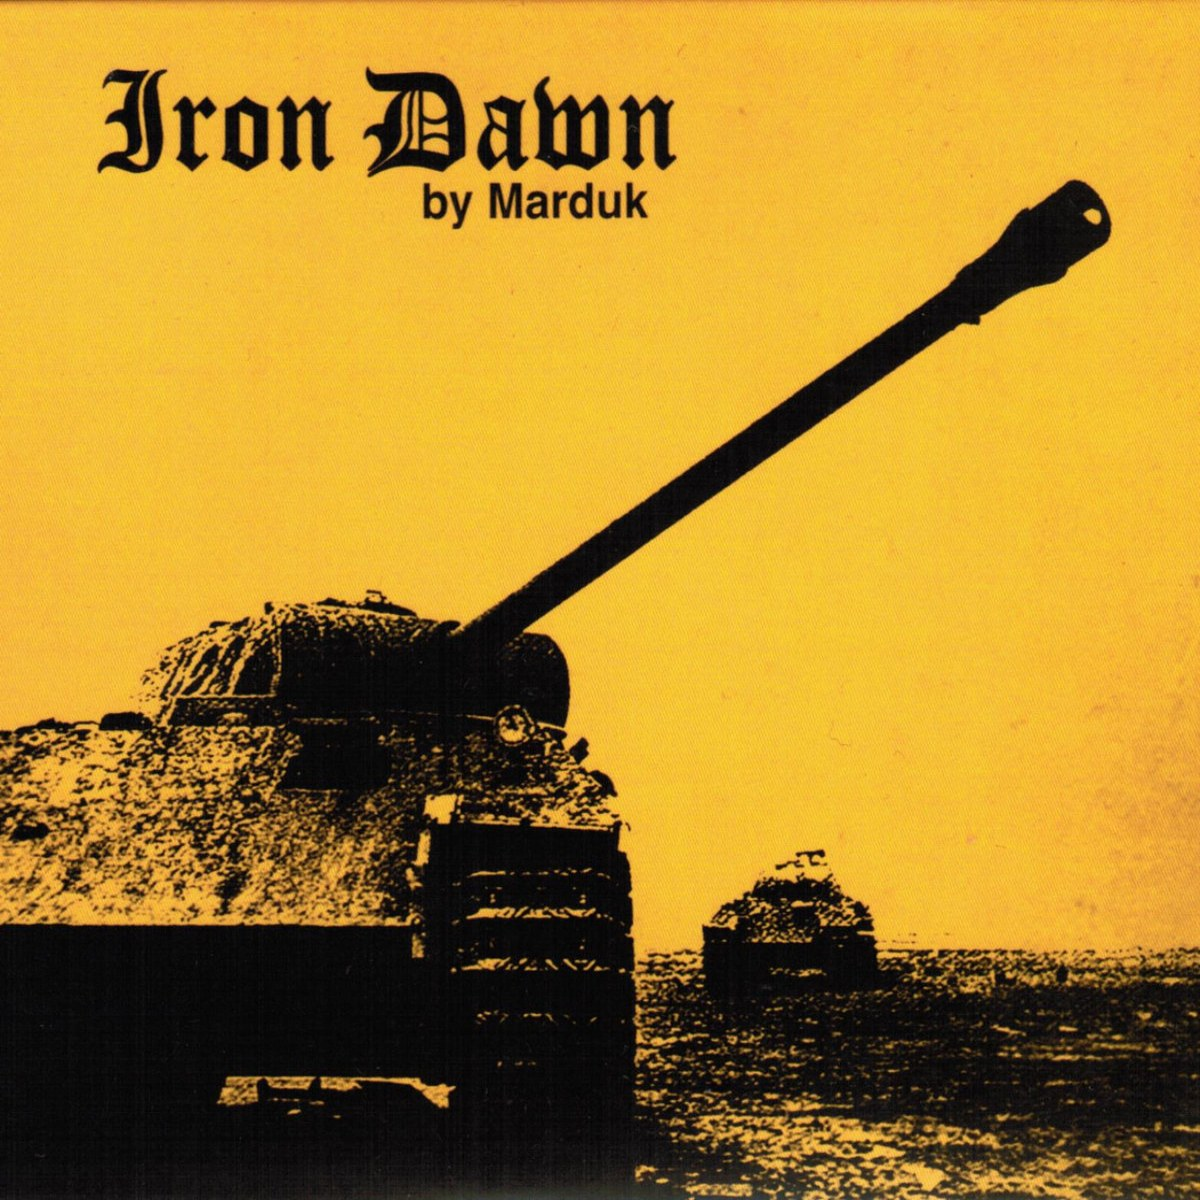 Review for Marduk - Iron Dawn